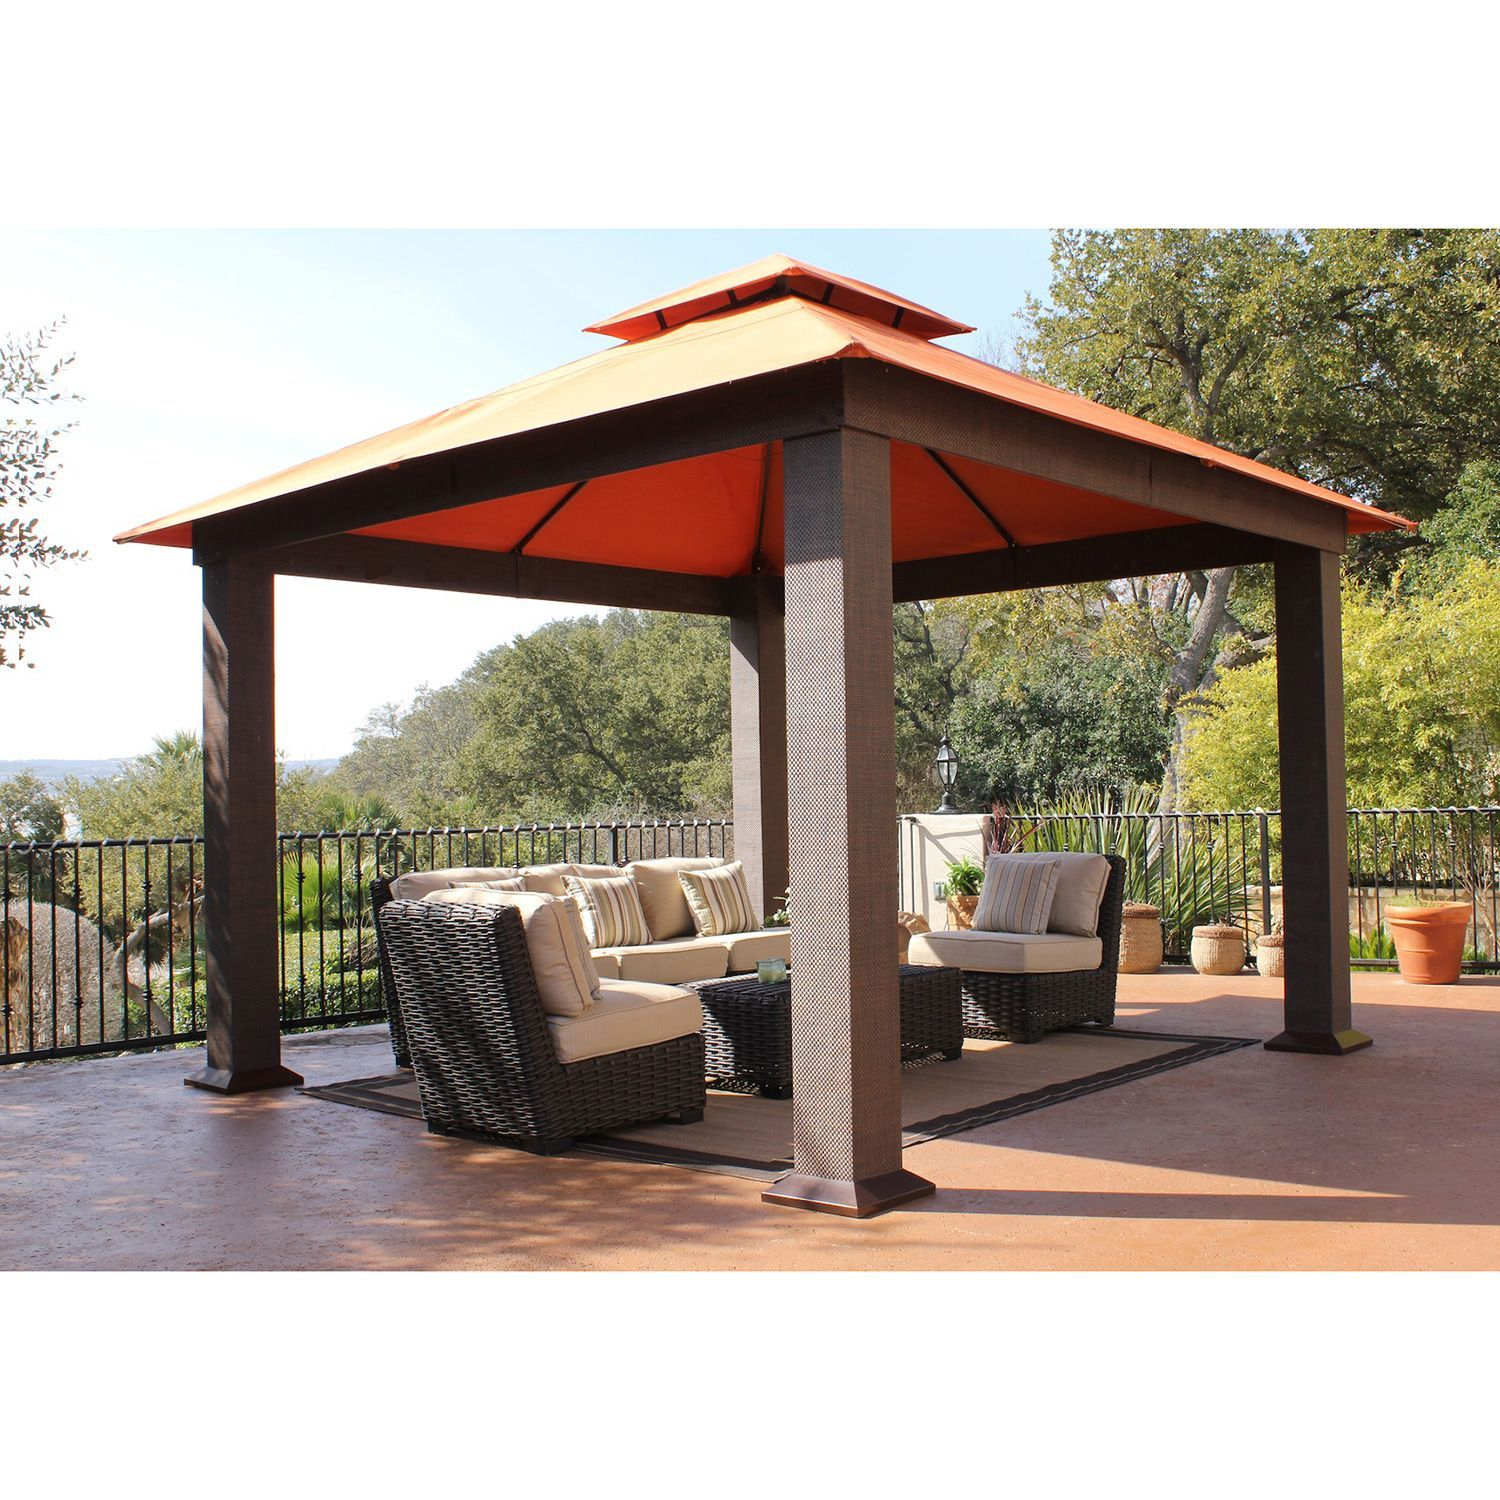 Stc Sonoma Gazebo 12 X 12 Sam S Club Patio Gazebo Garden Gazebo Backyard Gazebo